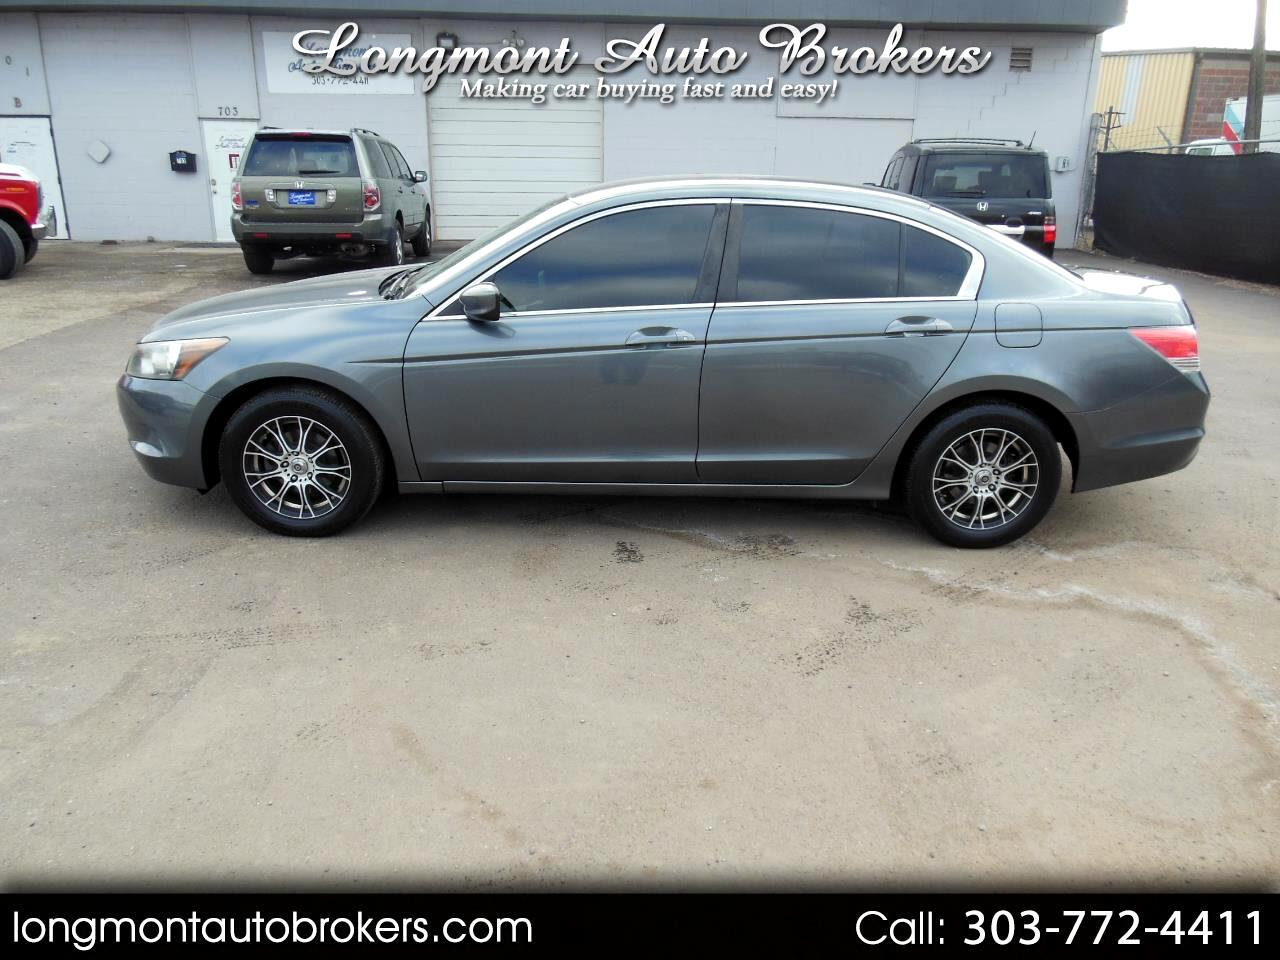 2008 Honda Accord Sdn 4dr I4 Man LX-P